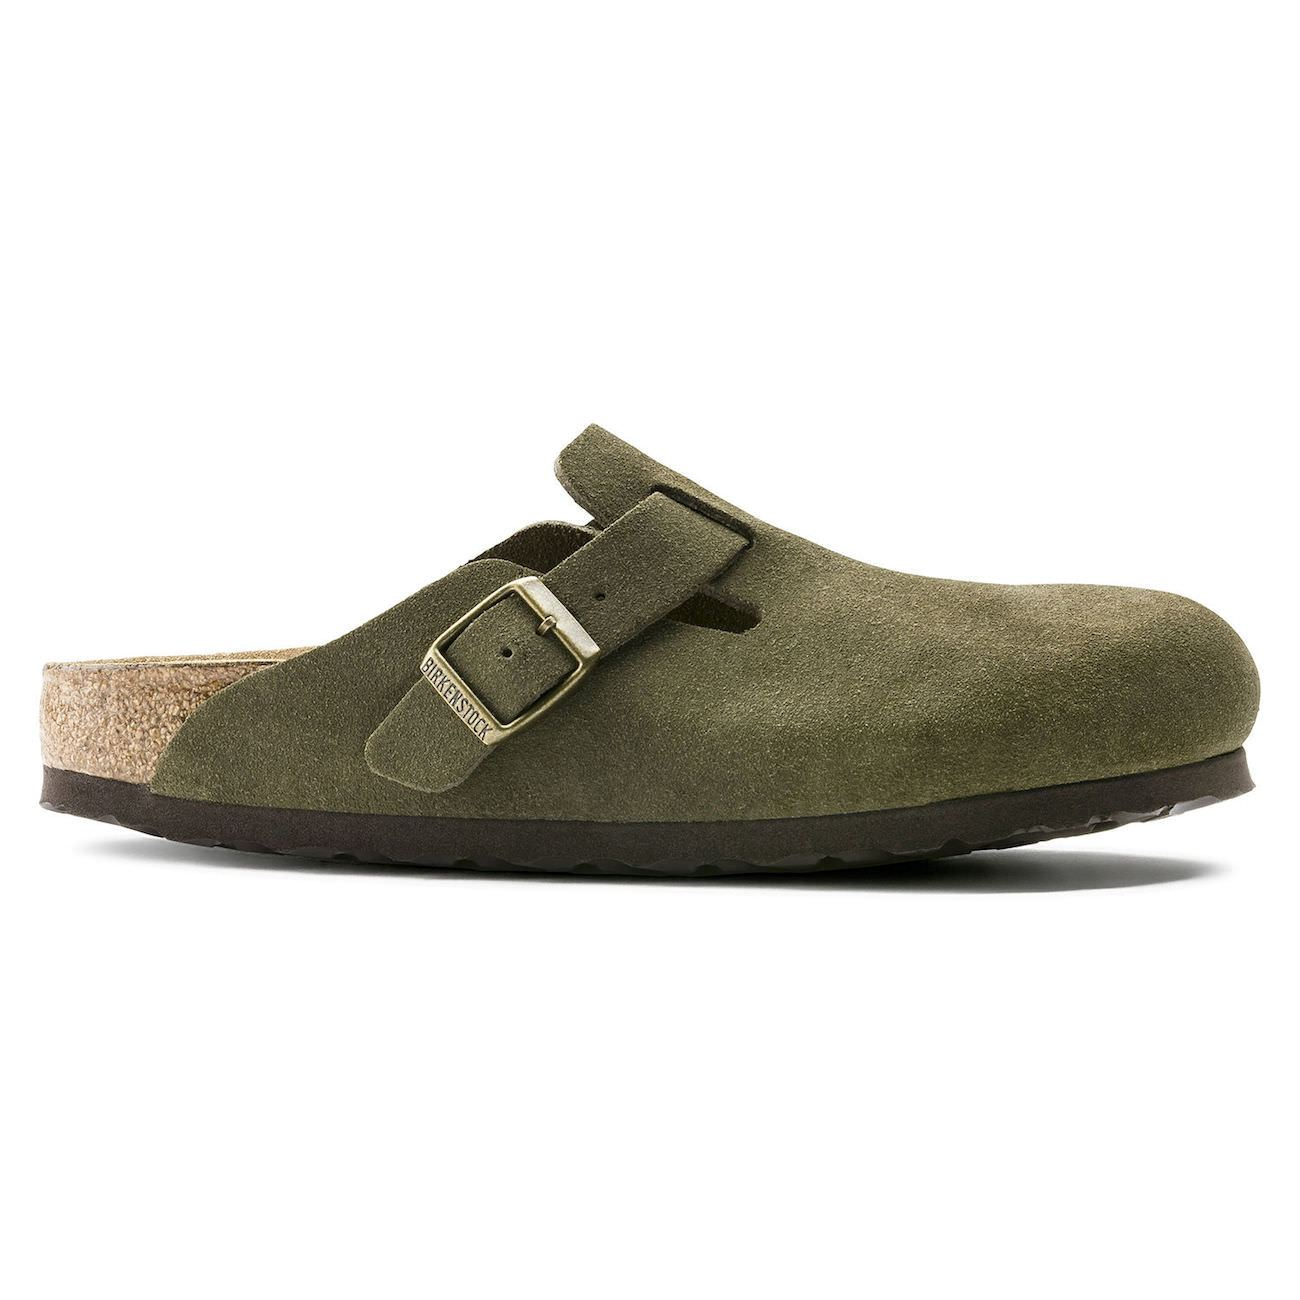 Birkenstock Boston, Narrow Fit, Soft Footbed, Suede Leather, Forest Clogs Birkenstock Classic Forest 42